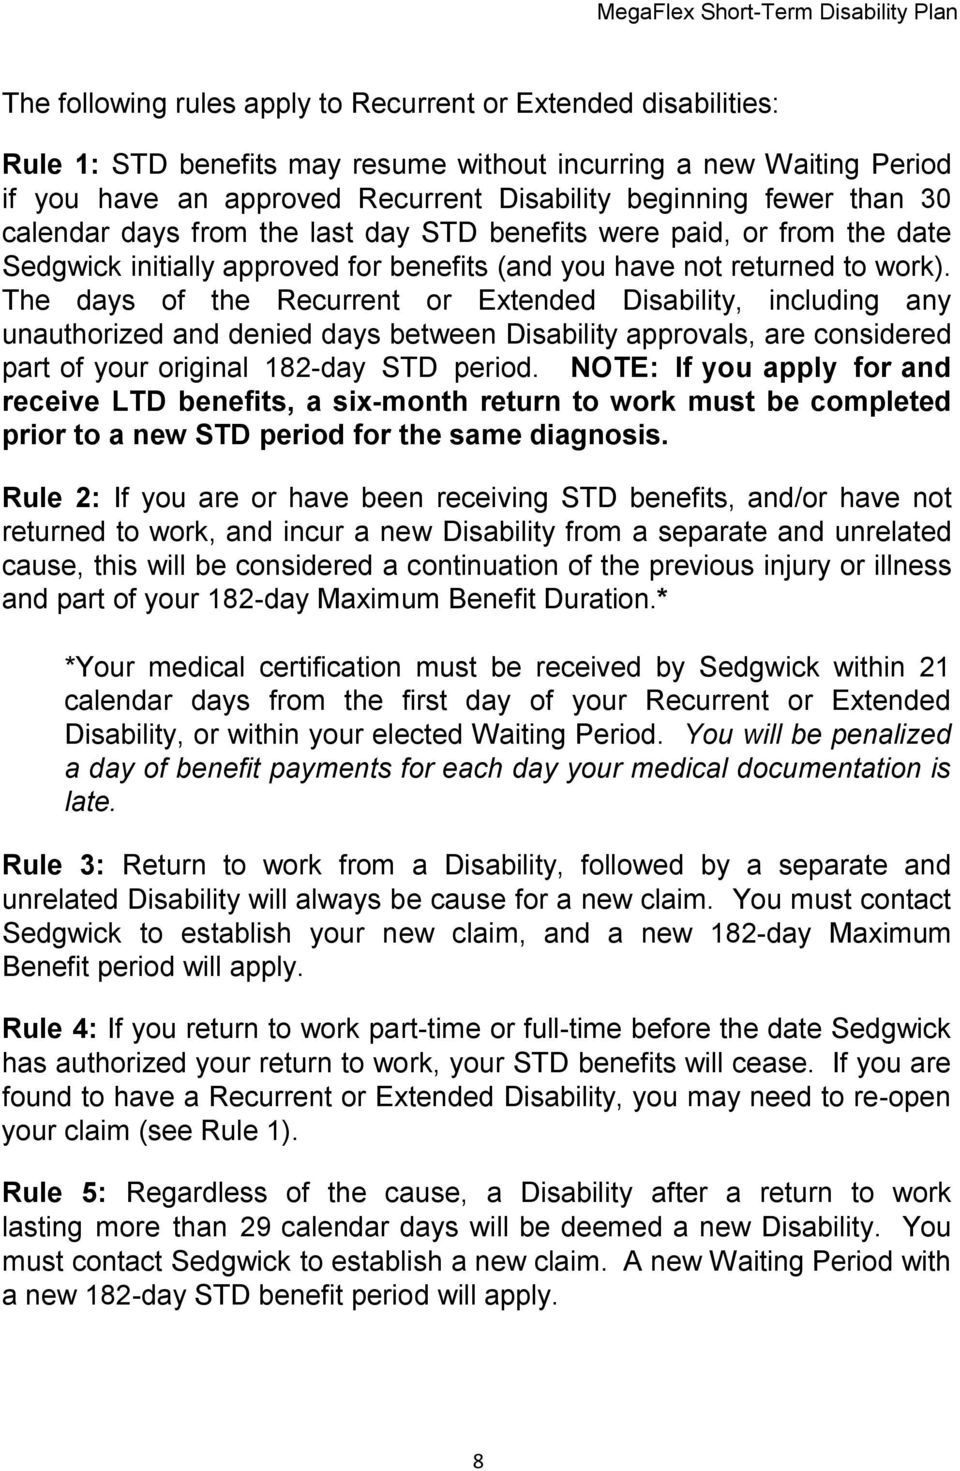 The days of the Recurrent or Extended Disability, including any unauthorized and denied days between Disability approvals, are considered part of your original 182-day STD period.